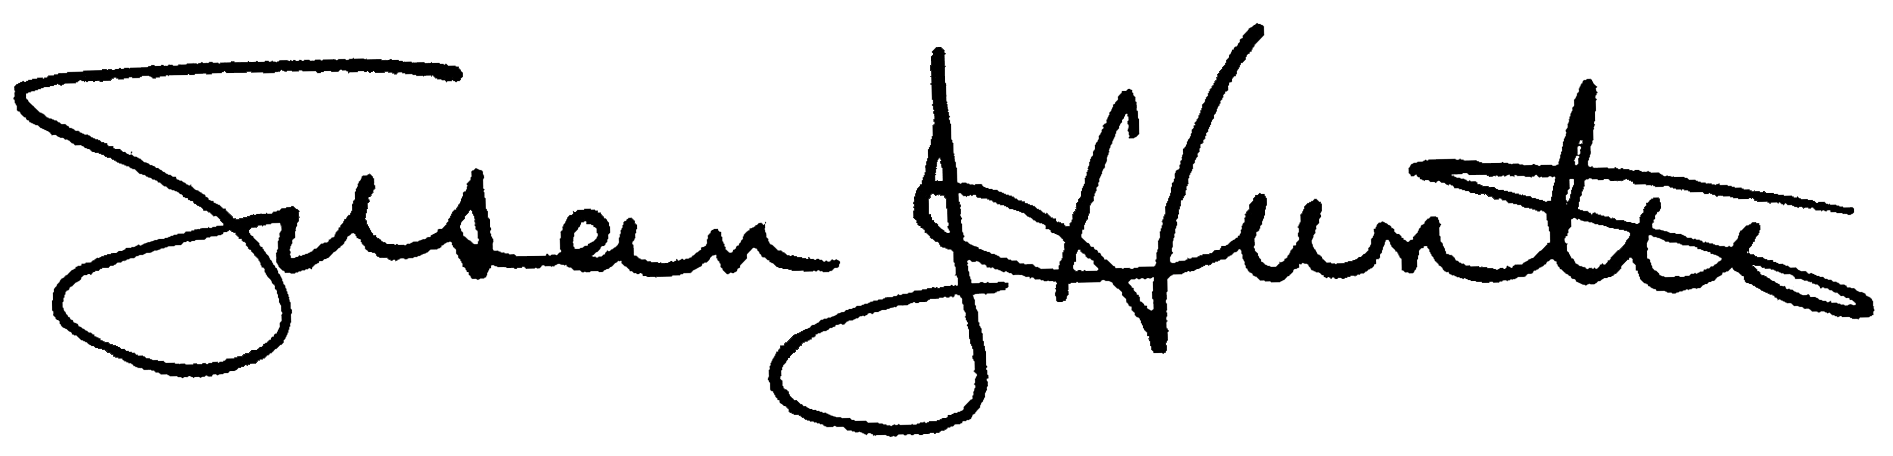 President Hunter signature